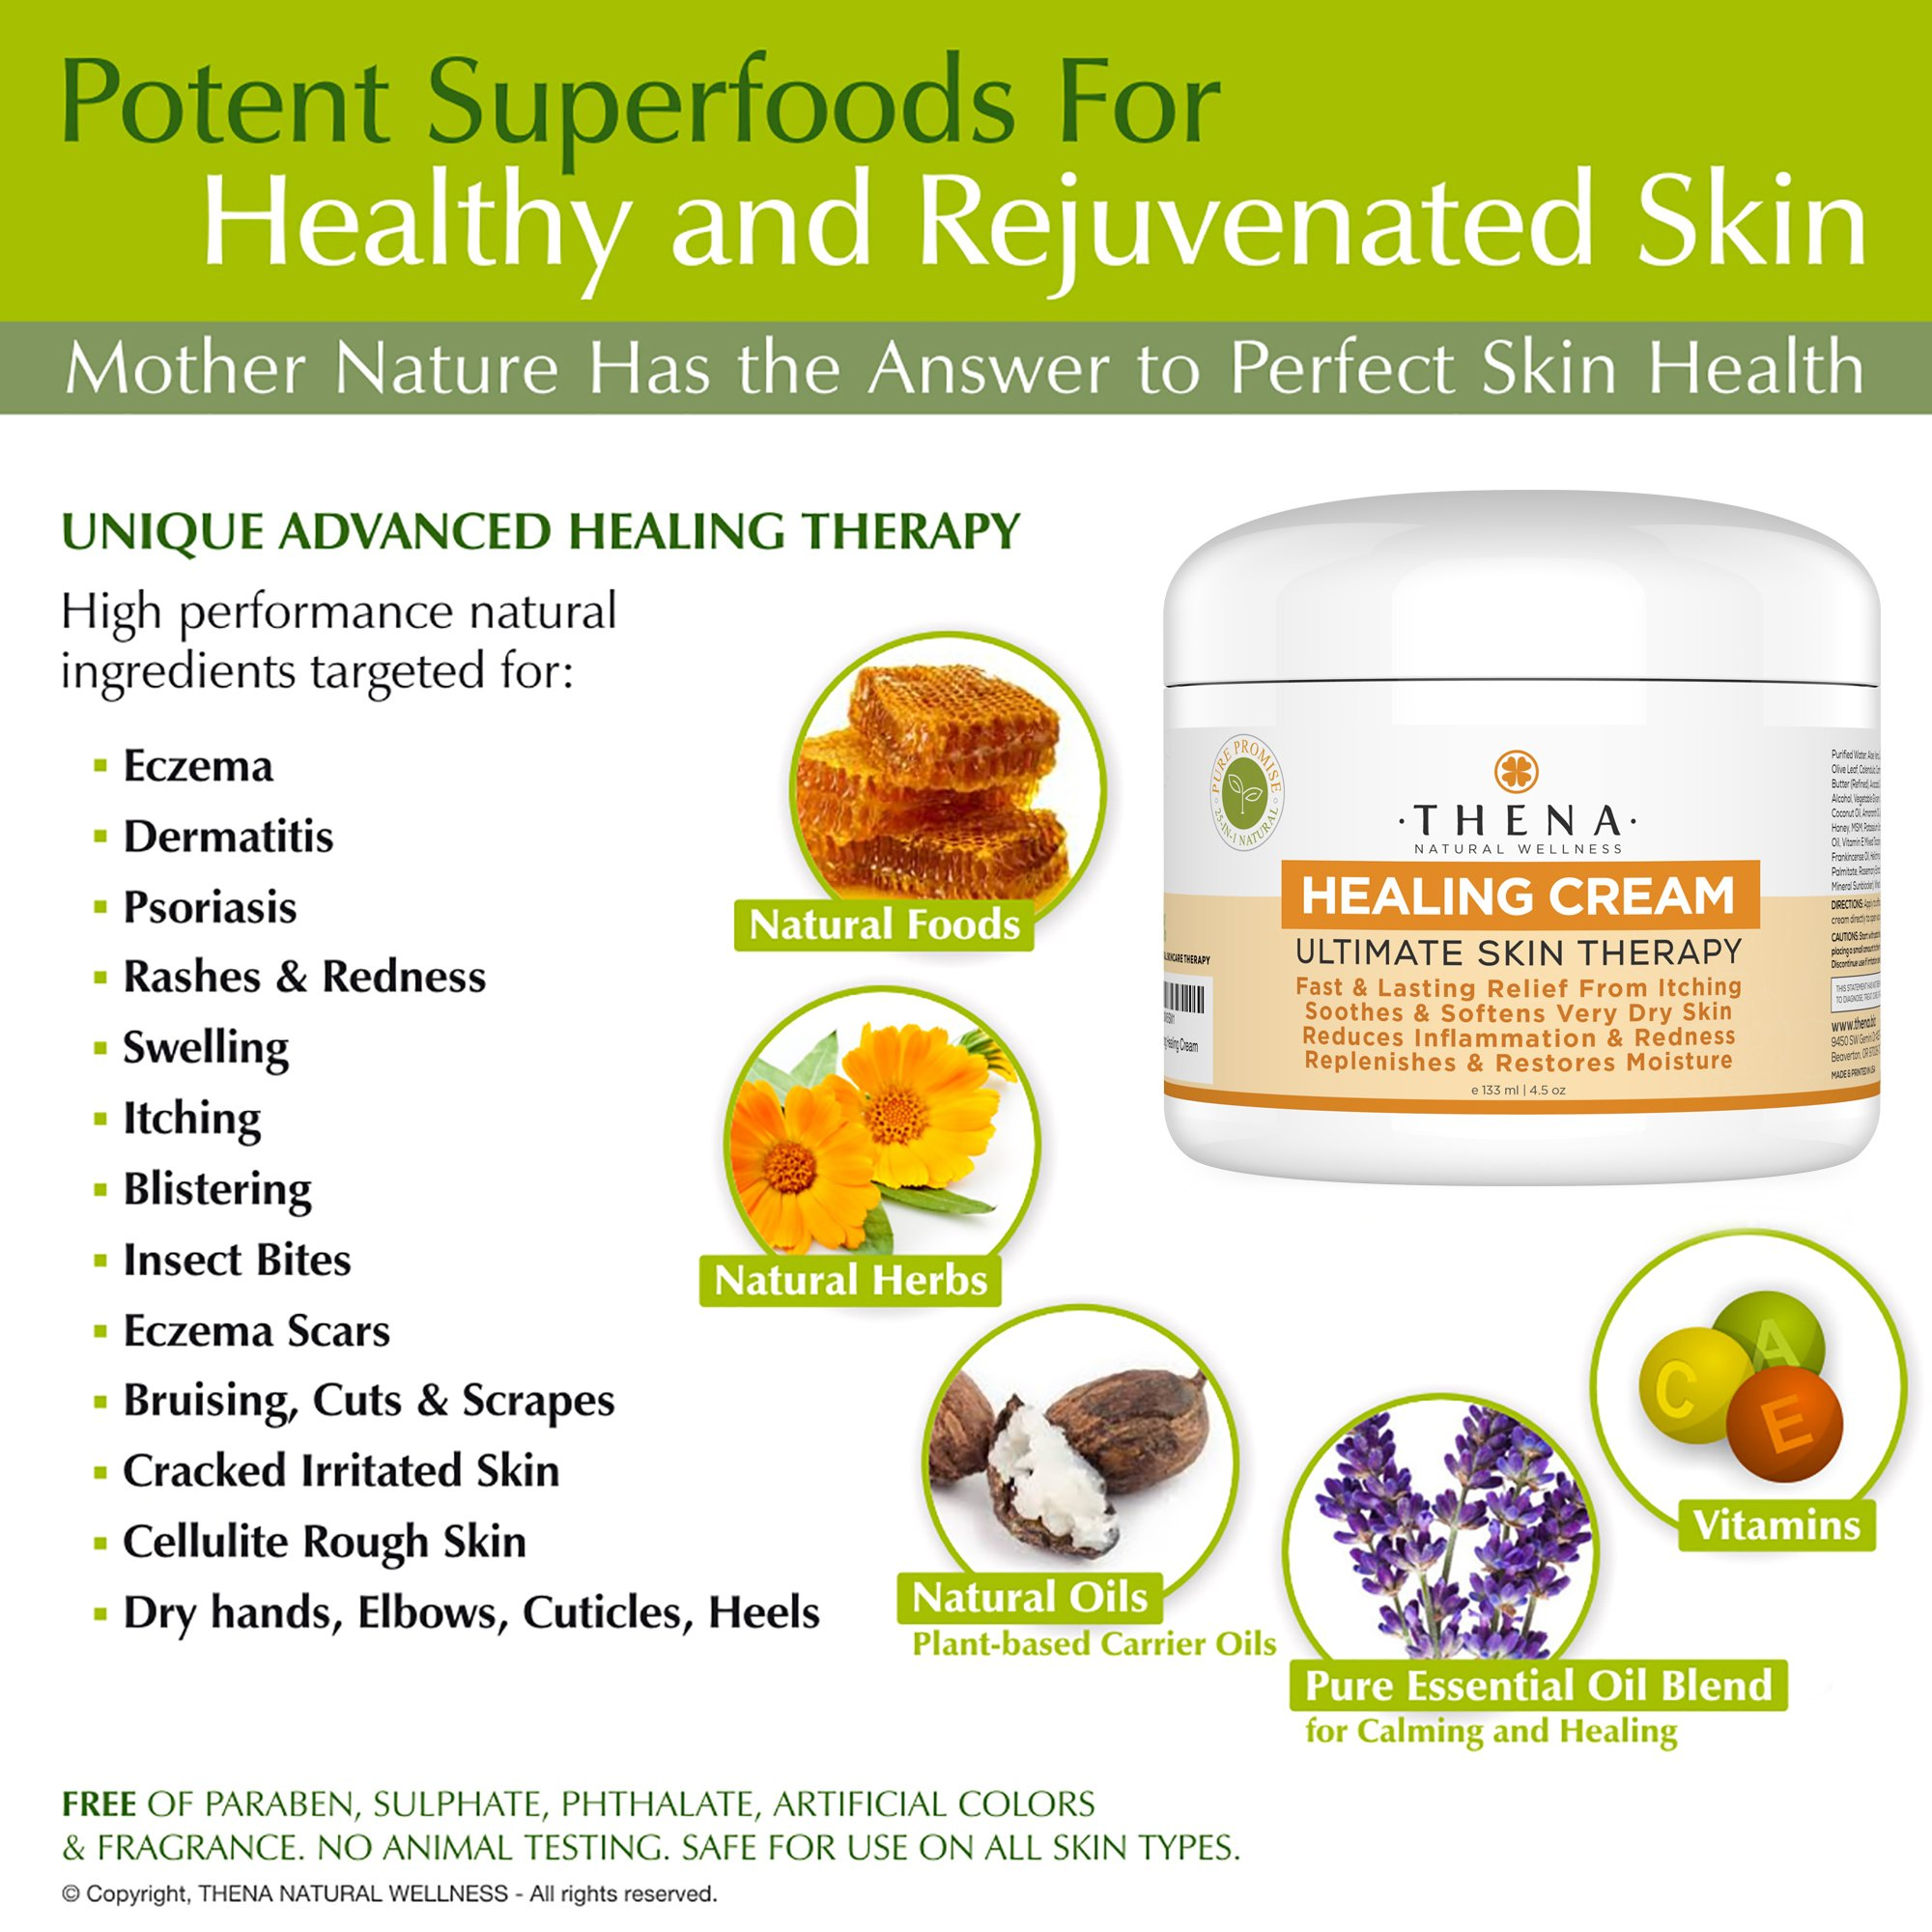 Best Healing Cream For Eczema Psoriasis Treatment, Natural Moisturizer For Face Body Dry Itchy Irritated Cracked Skin, Anti Itch Relief Therapy Lotion Relieve Atopic Dermatitis Rashes Rosacea Shingles by THENA Natural Wellness (Image #3)